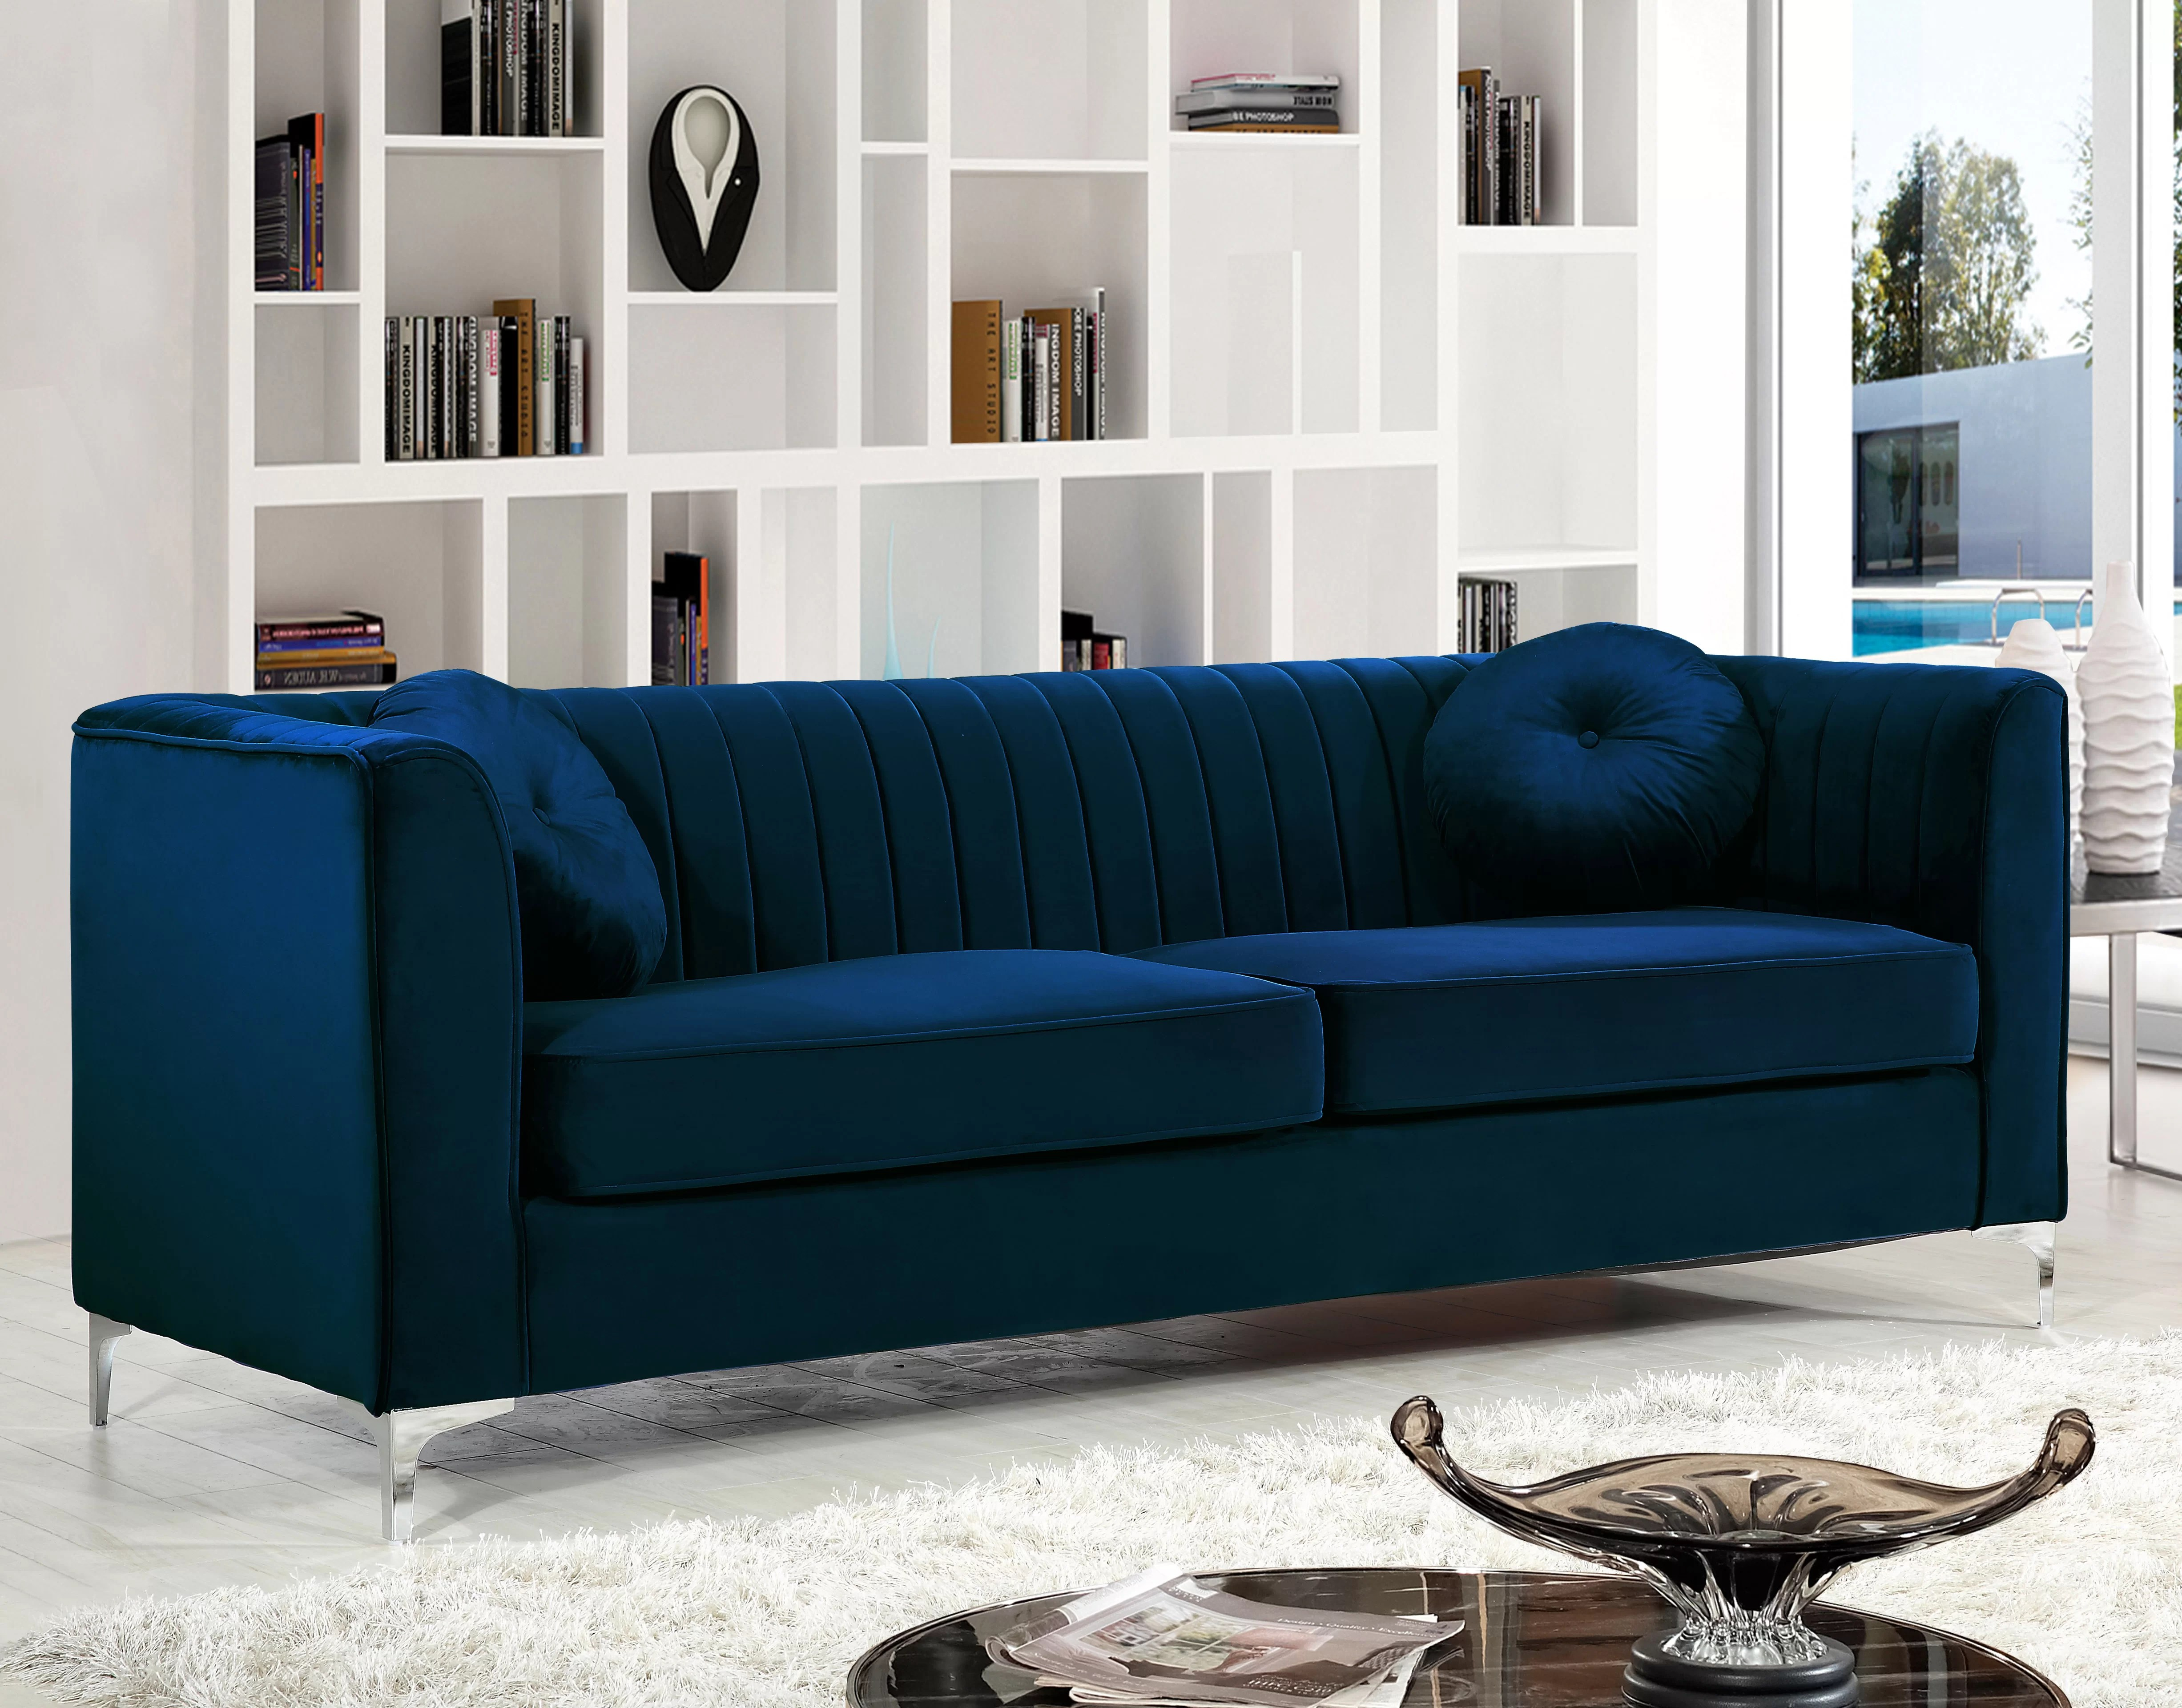 Sofa Couch Or Chesterfield Blue Chesterfield Sofas You Ll Love Wayfair